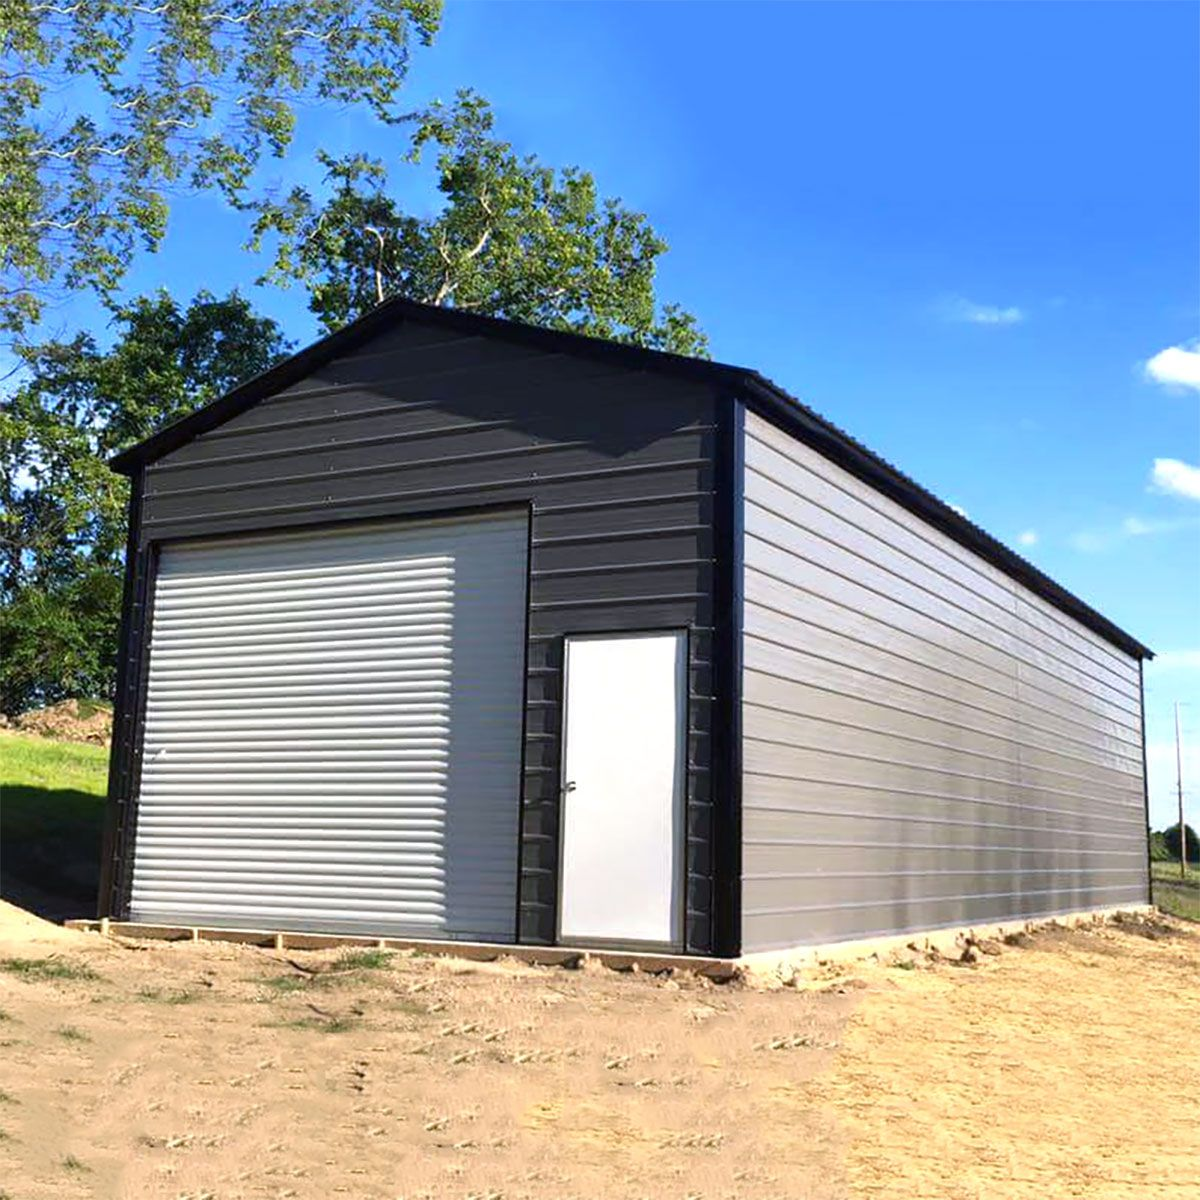 Shop Metal Carports Sheds And Garages Near Me Metal Carports Metal Rv Carports Steel Workshop